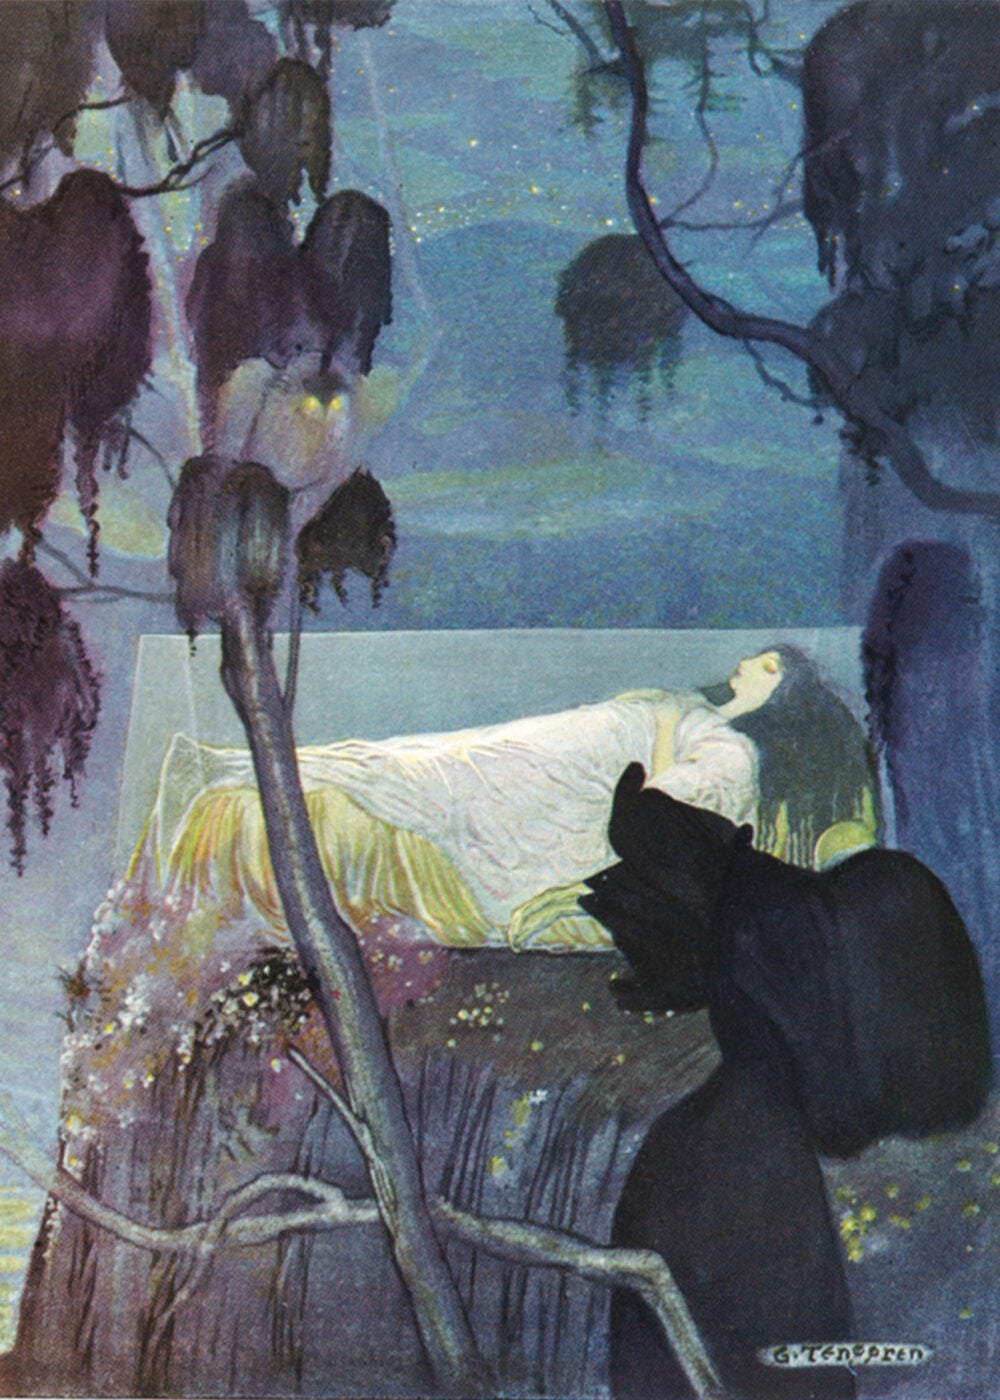 A 1923 illustration of Snow White